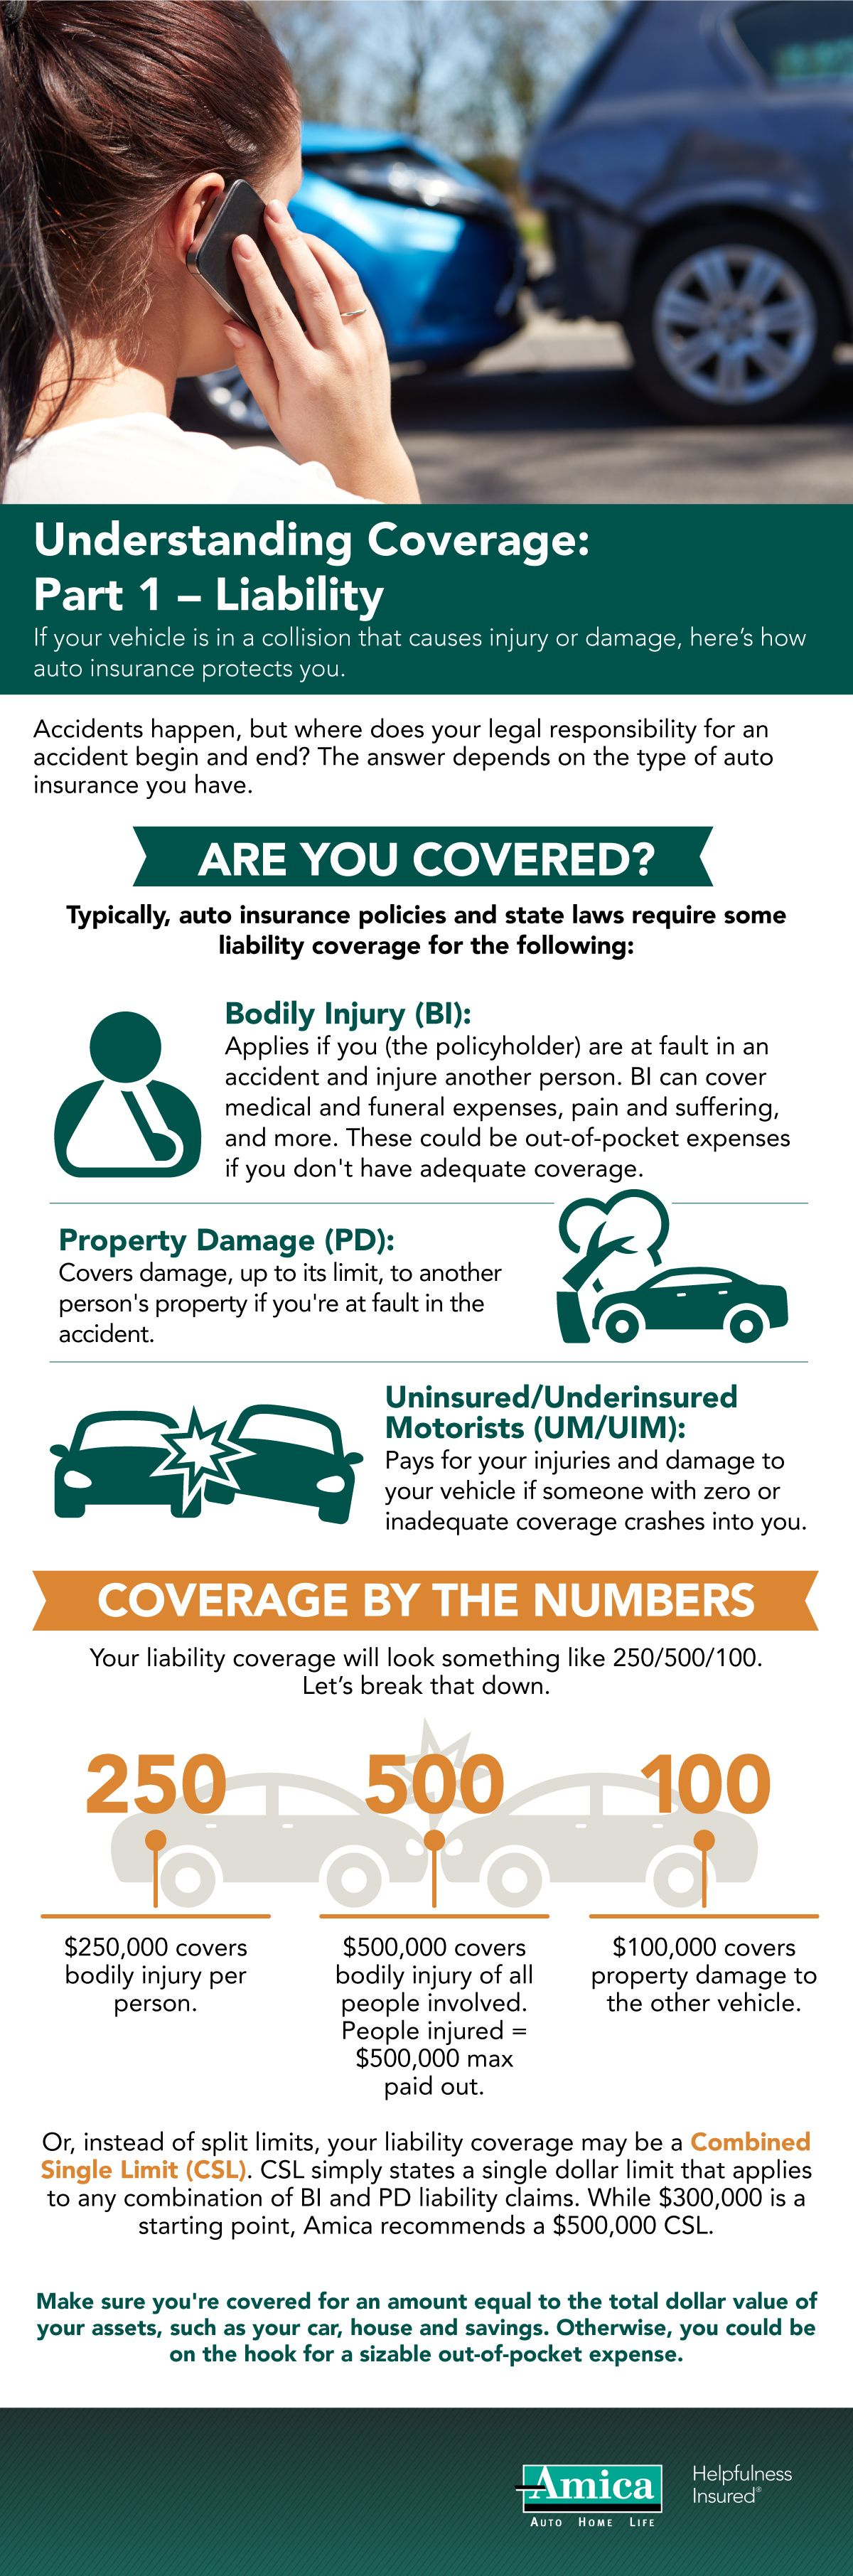 Understanding Coverage Part 1 Liability How Are You Feeling